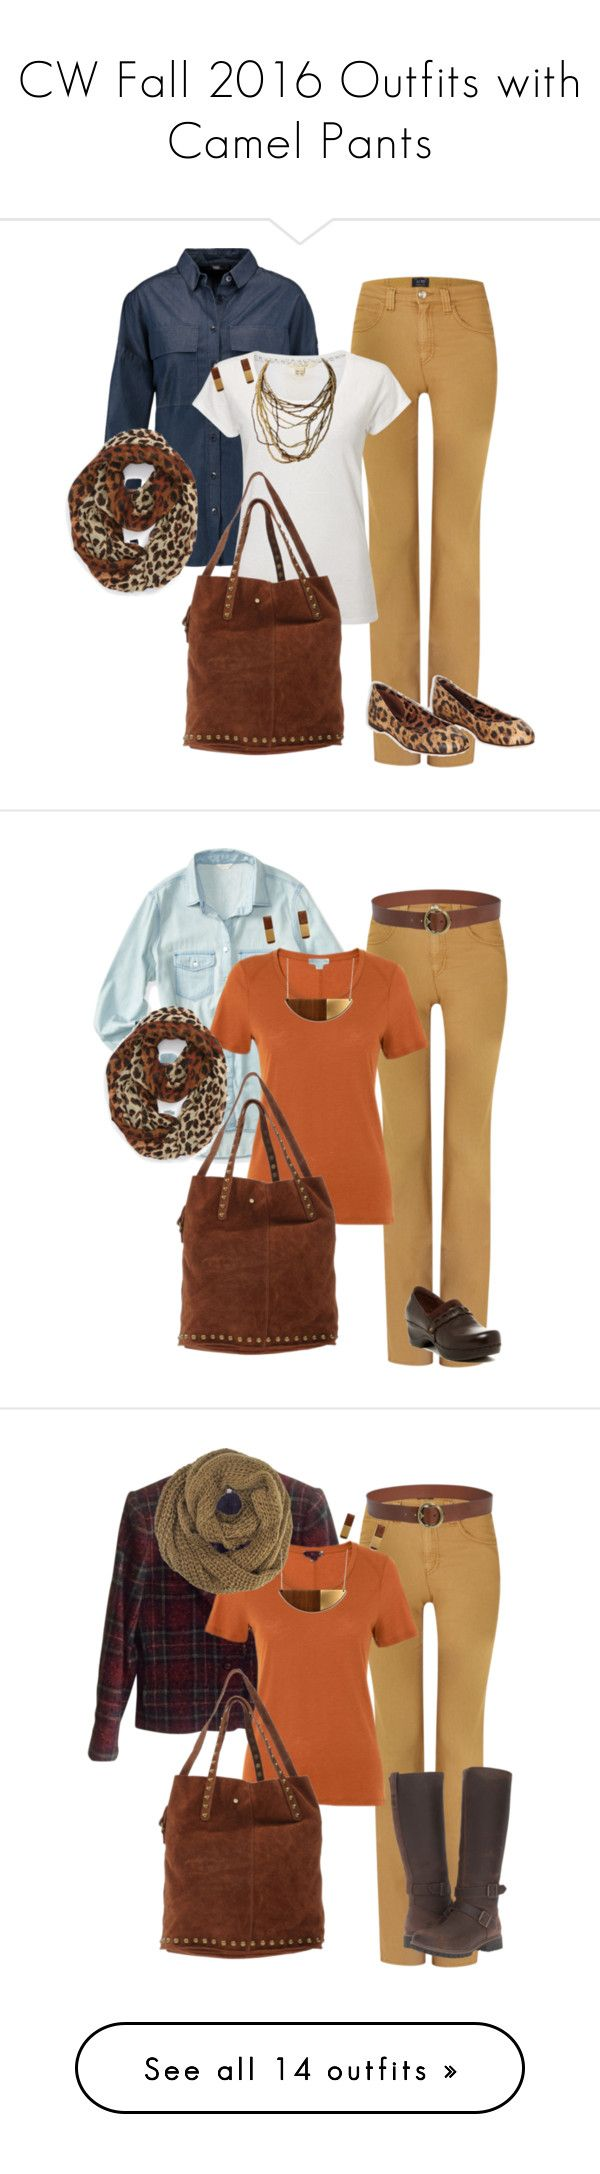 """""""CW Fall 2016 Outfits with Camel Pants"""" by tammy-marshall on Polyvore featuring Armani Jeans, TIBI, White Stuff, TIFFI, Dolce&Gabbana, BP., Minimalist, capsulewardrobe, LiveSimply and Aéropostale"""